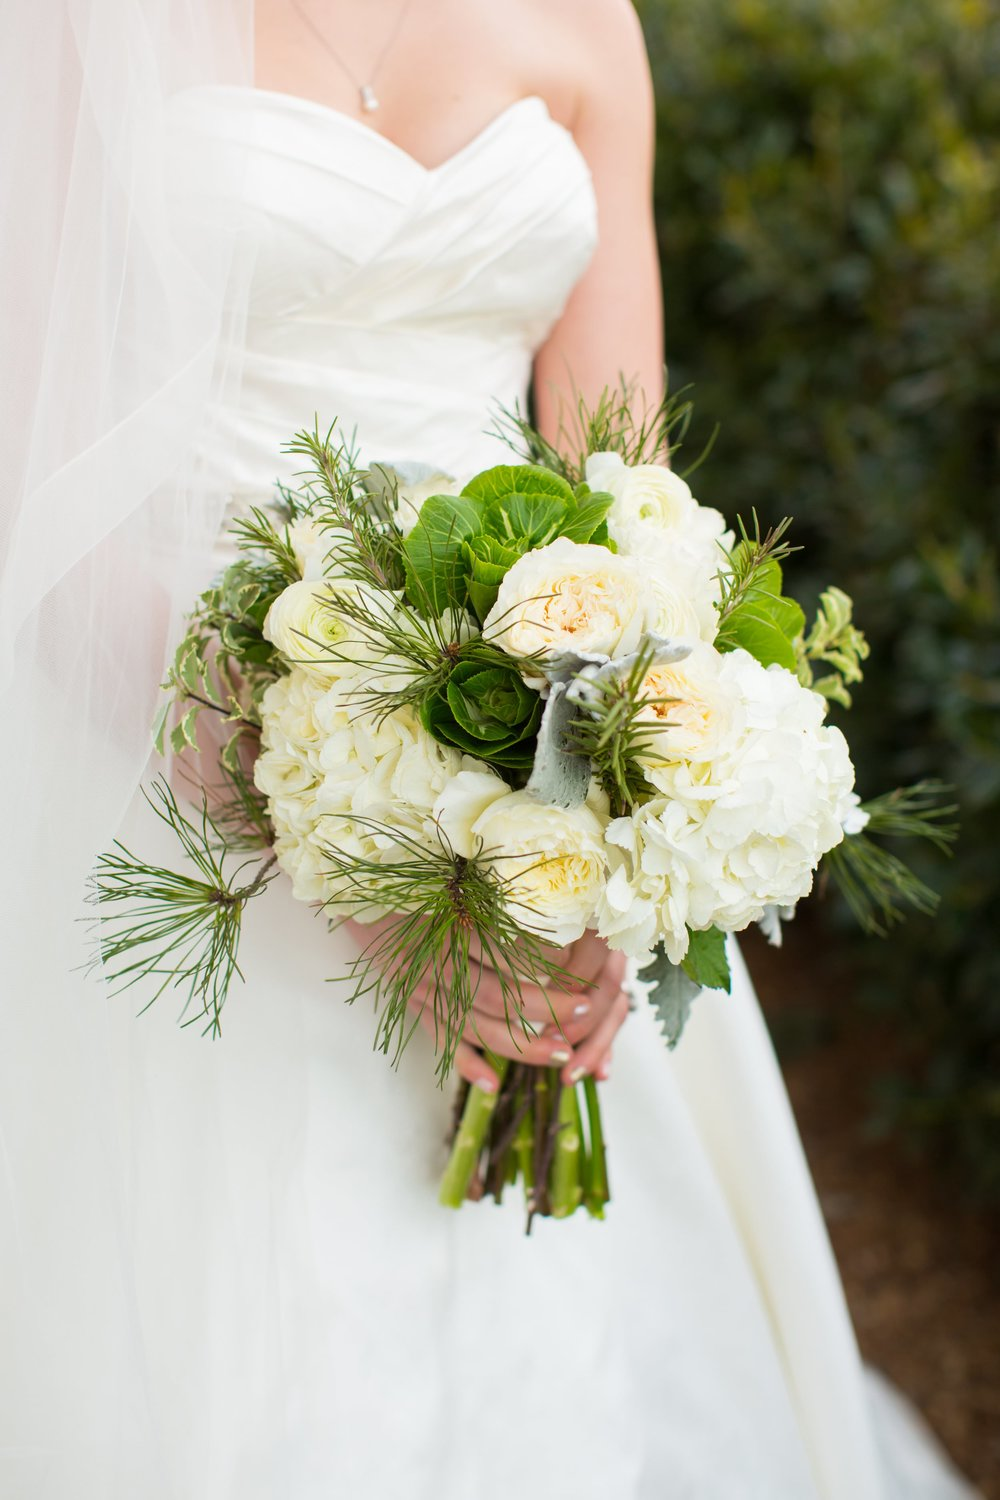 Kristin's textured green and white bouquet was the perfect design for her  Summerour wedding .